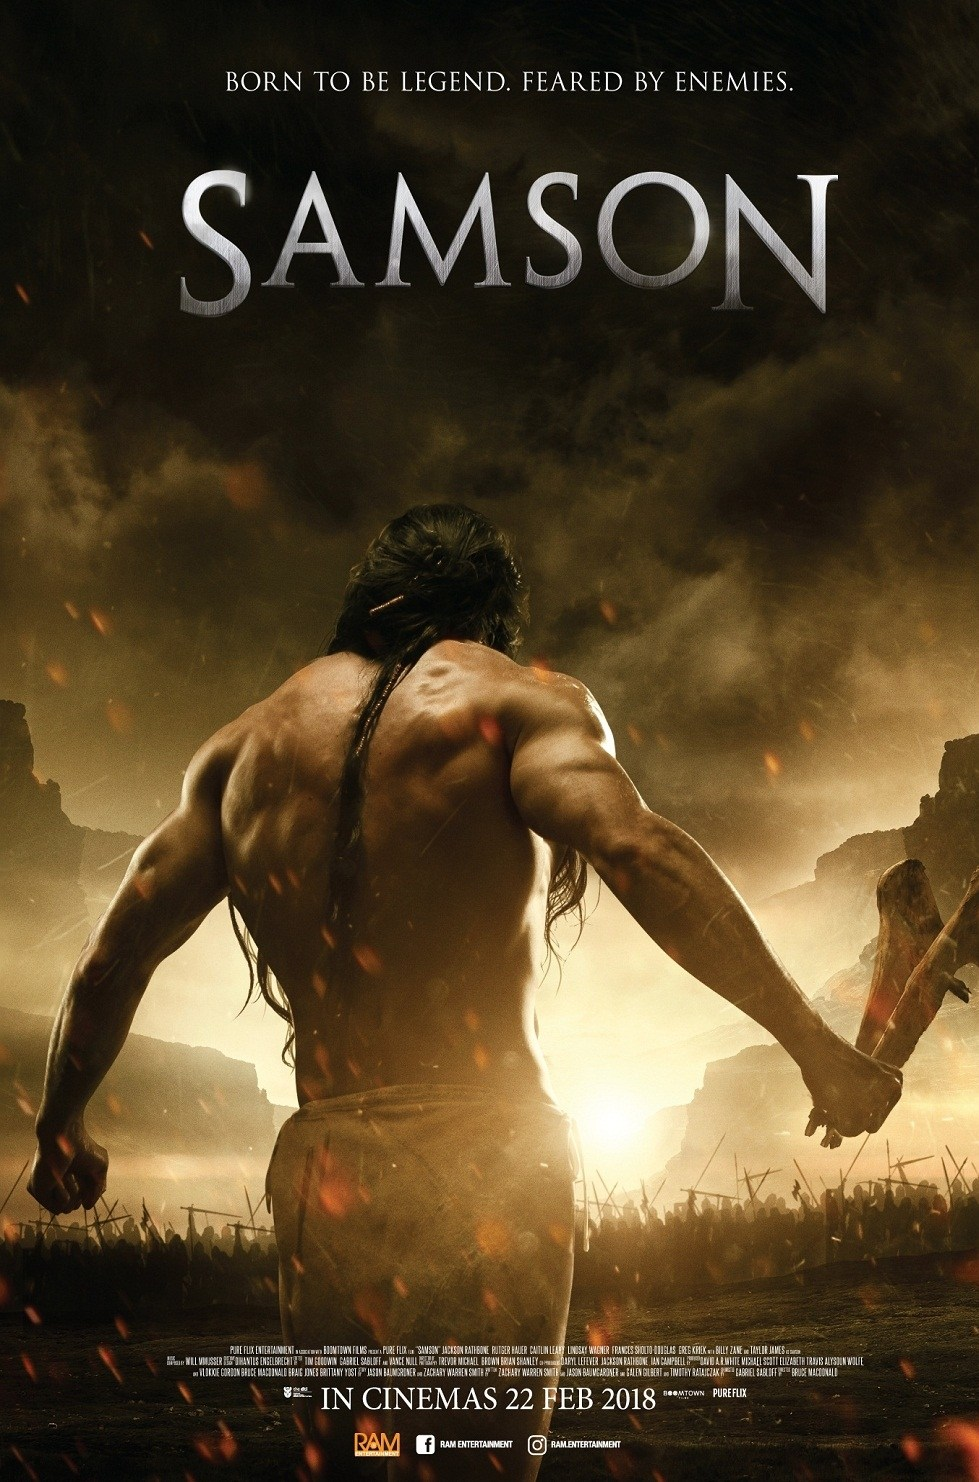 SAMSON (2018) - Directed by: Bruce Macdonald, Gabriel SabloffStarring: Jackson Rathbone, Billy Zane, Taylor James, Rutger Hauer, Caitlin LeahyRated: PG13Running Time: 1h 50mTMM Score: 1 star out of 5STRENGTHS: Rathbone's MusclesWEAKNESSES: Everything Else